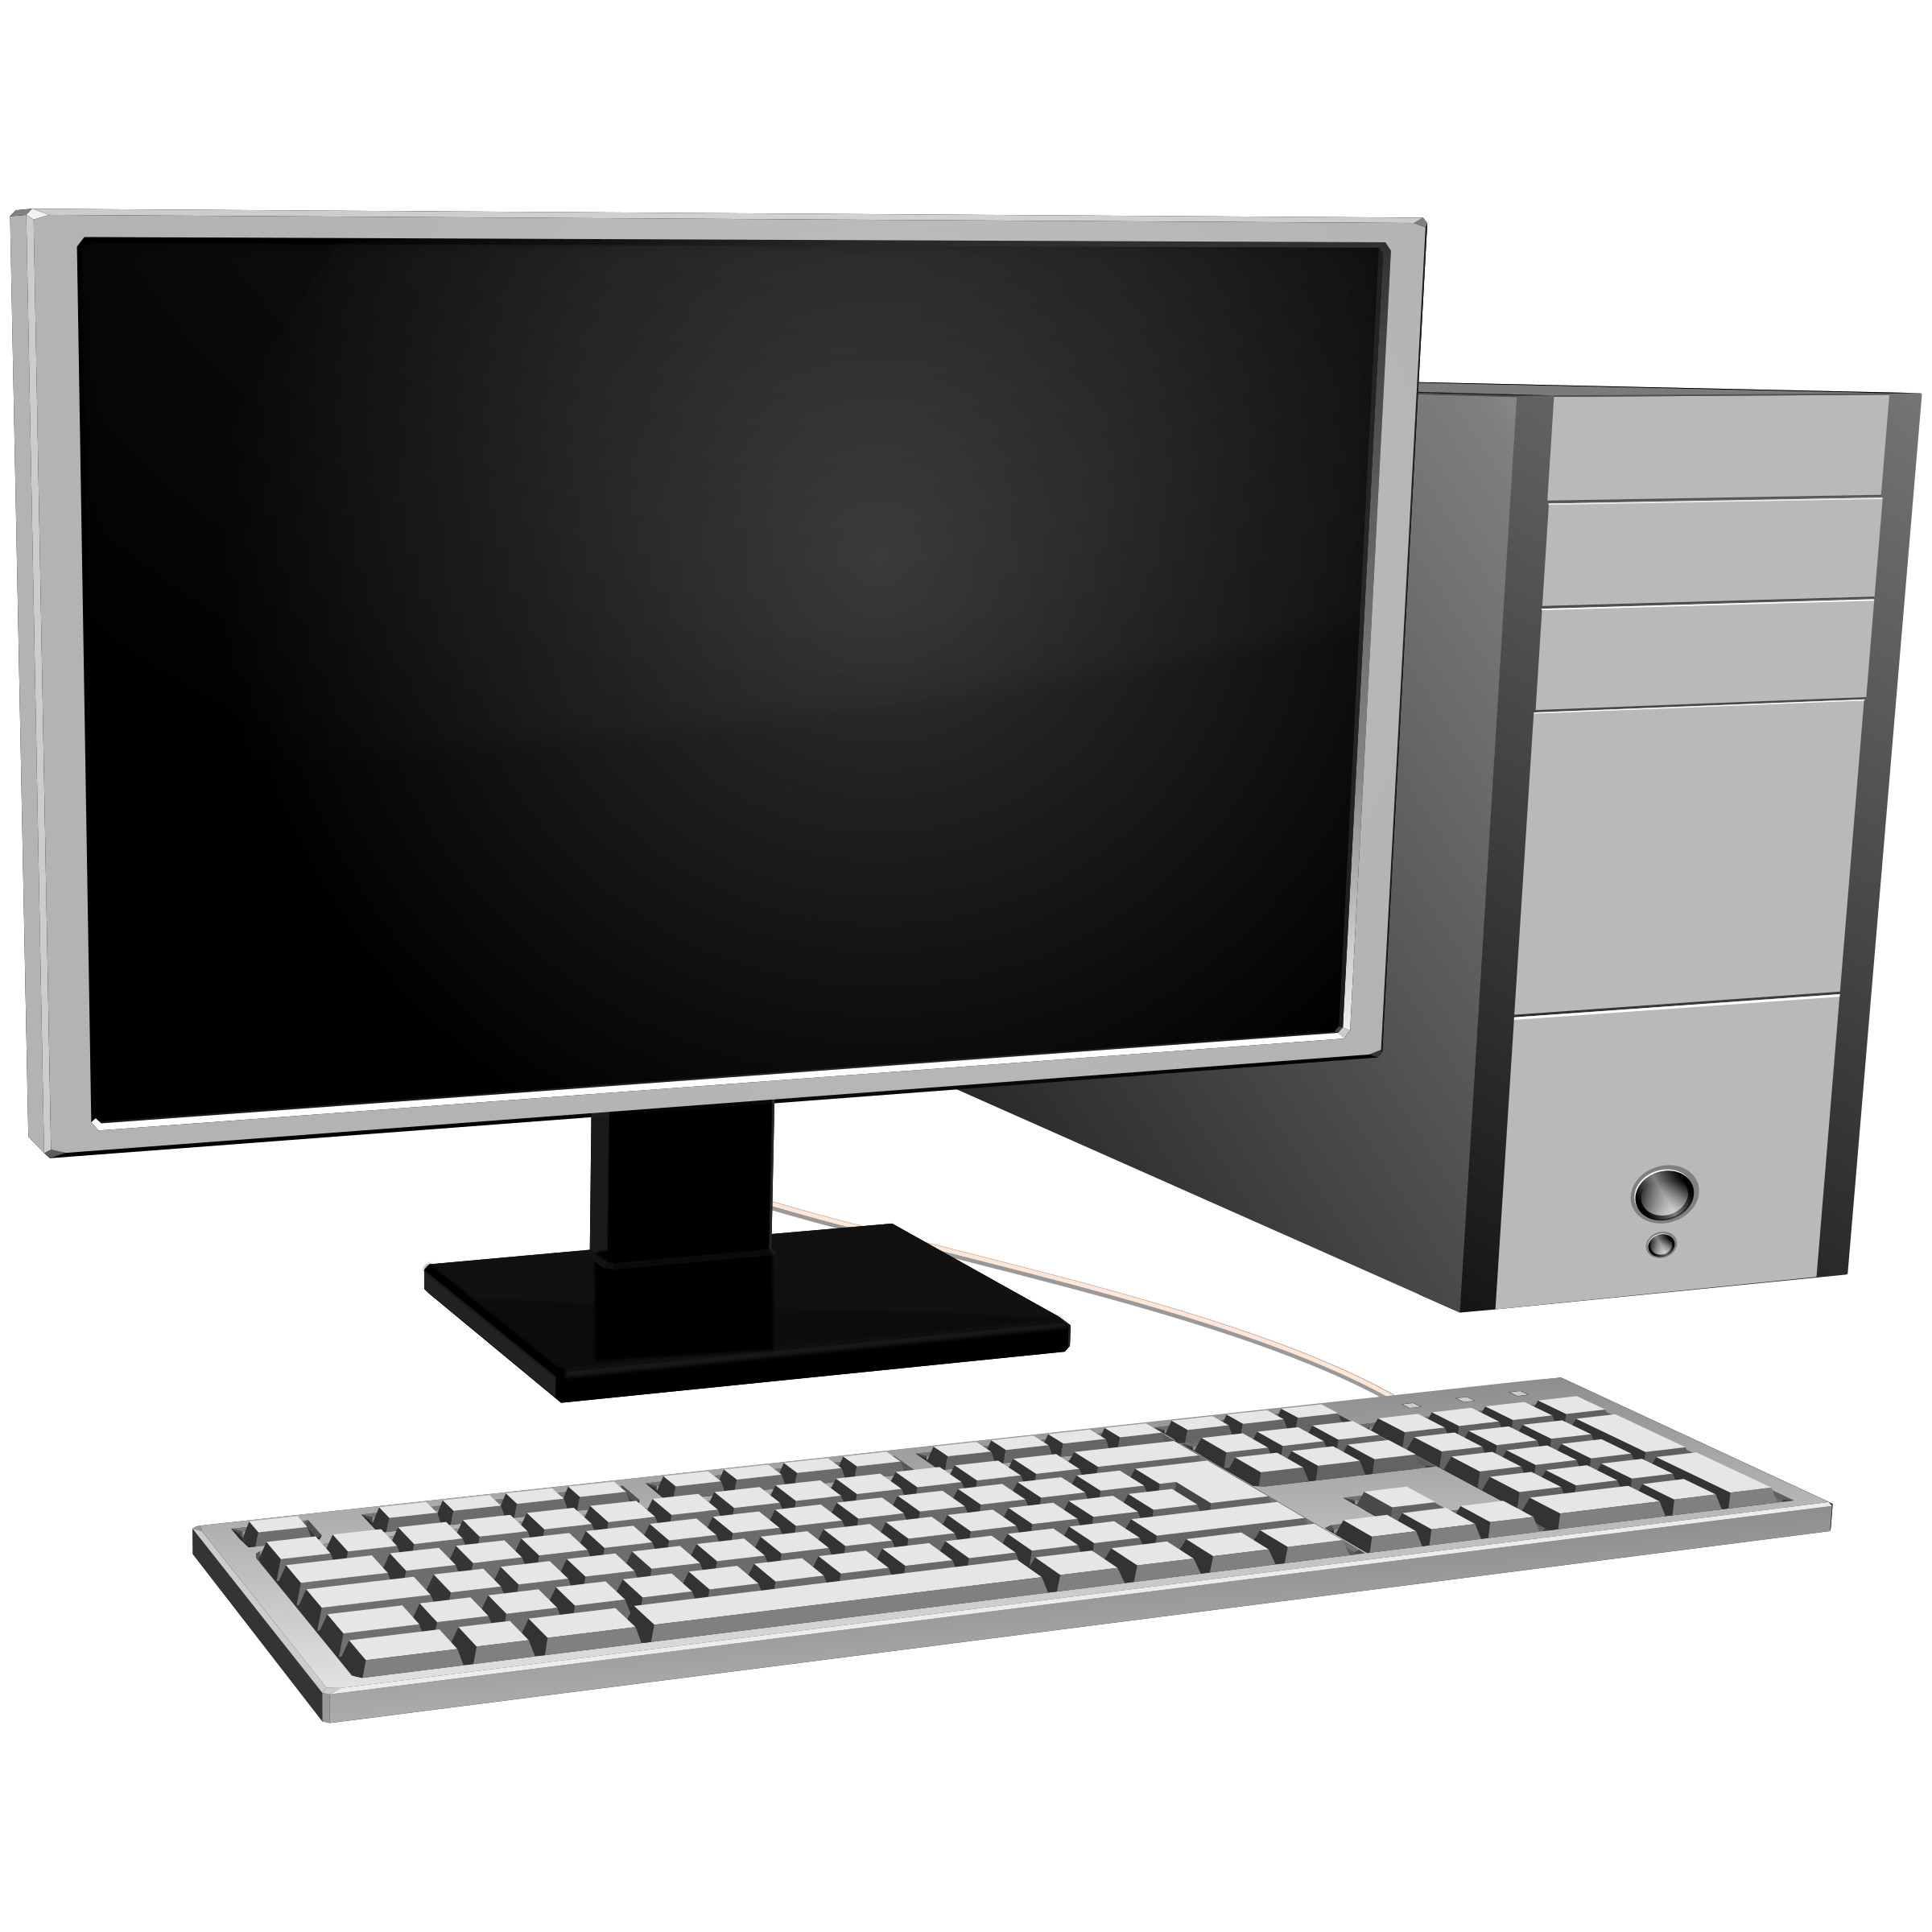 Keyboard computer clipart image black and white Clipart - Computer image black and white